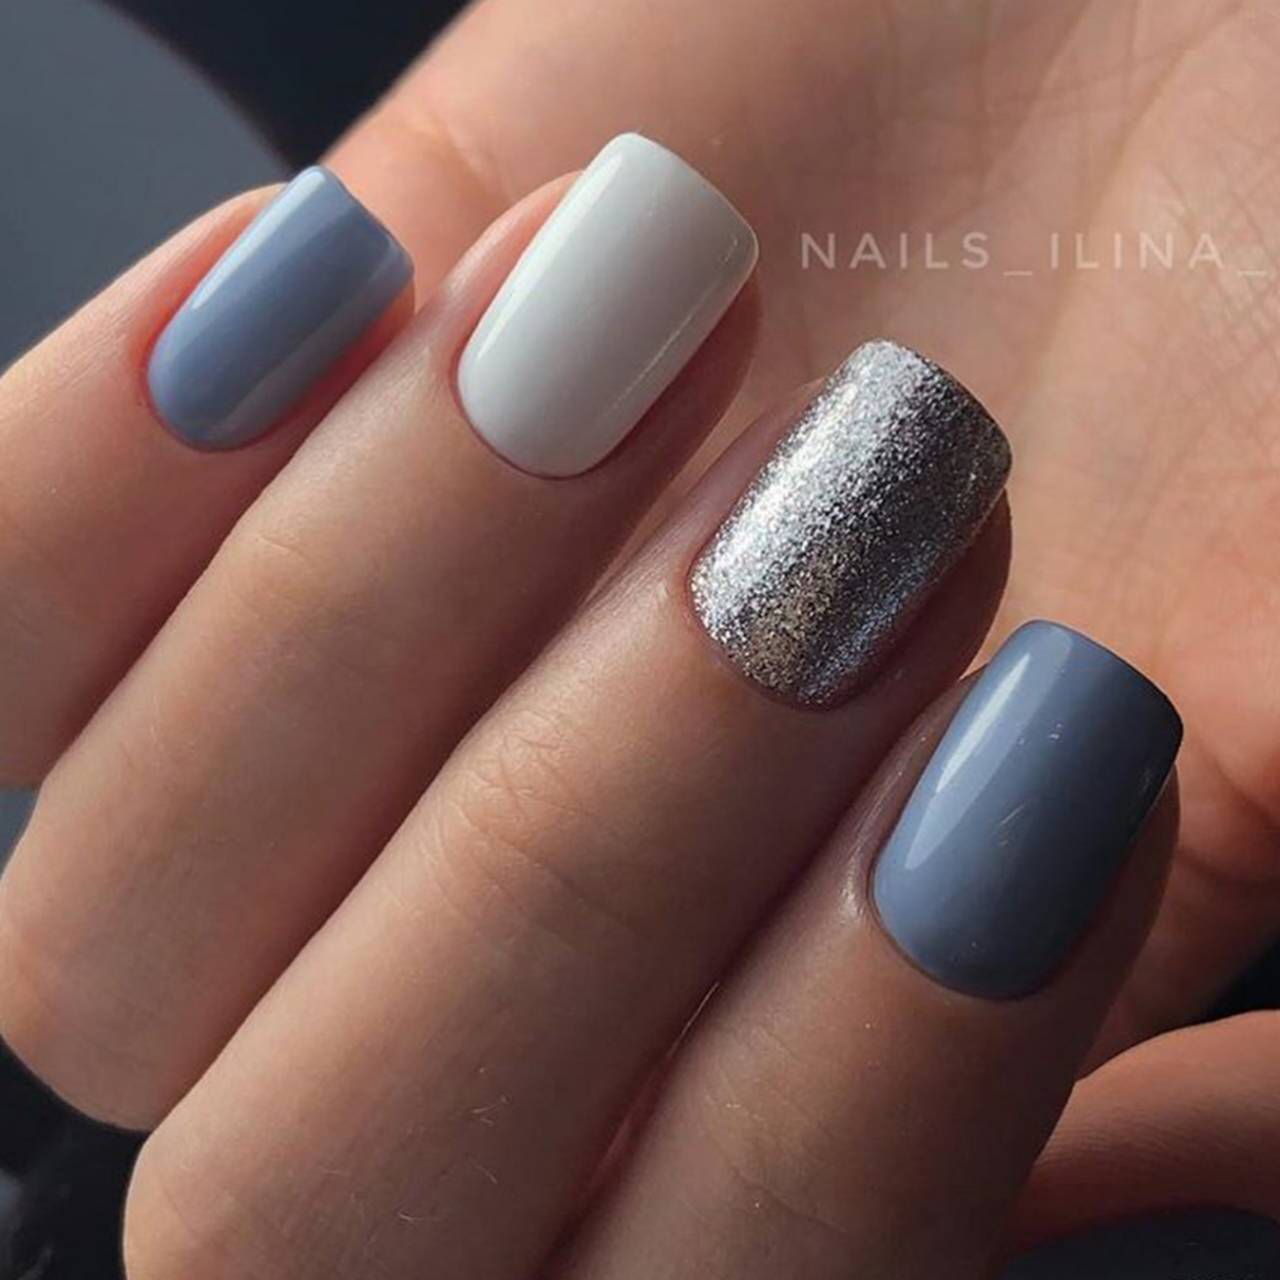 Gel Gel Polish Gel Nails Short Nails Nail Art Nail Design Nails Winter Nails Marble Nails Neutral Nails Ho Heart Nails Accent Nail Designs Cute Nails